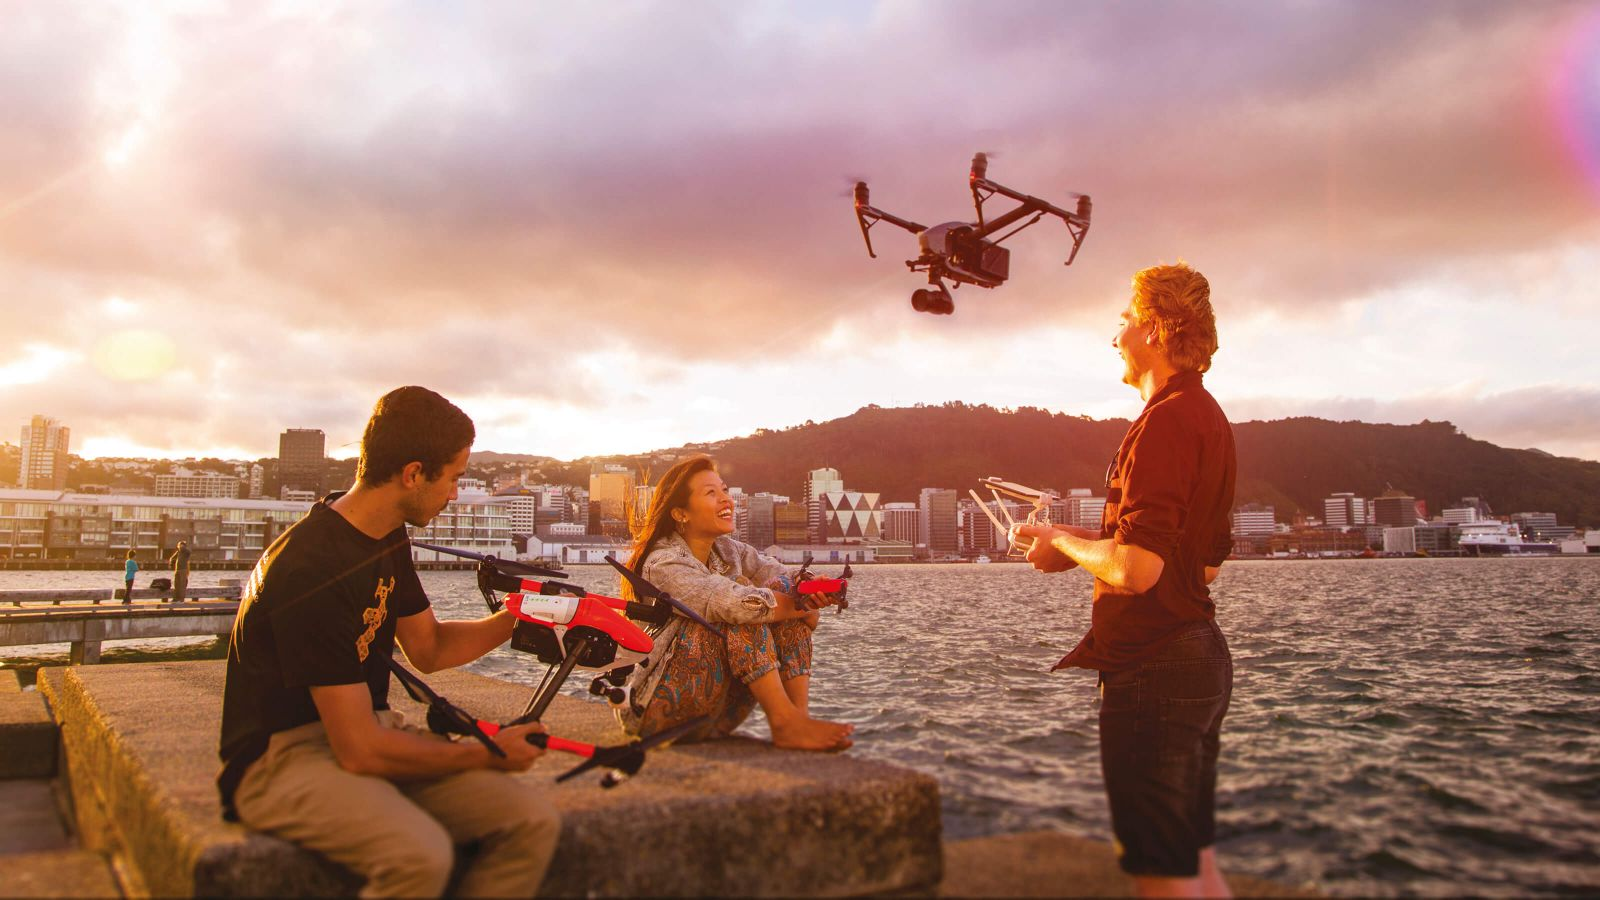 Engineering students Daniel Forbes, Charlene Leong and David Dobbie test out drones on Wellington's waterfront.